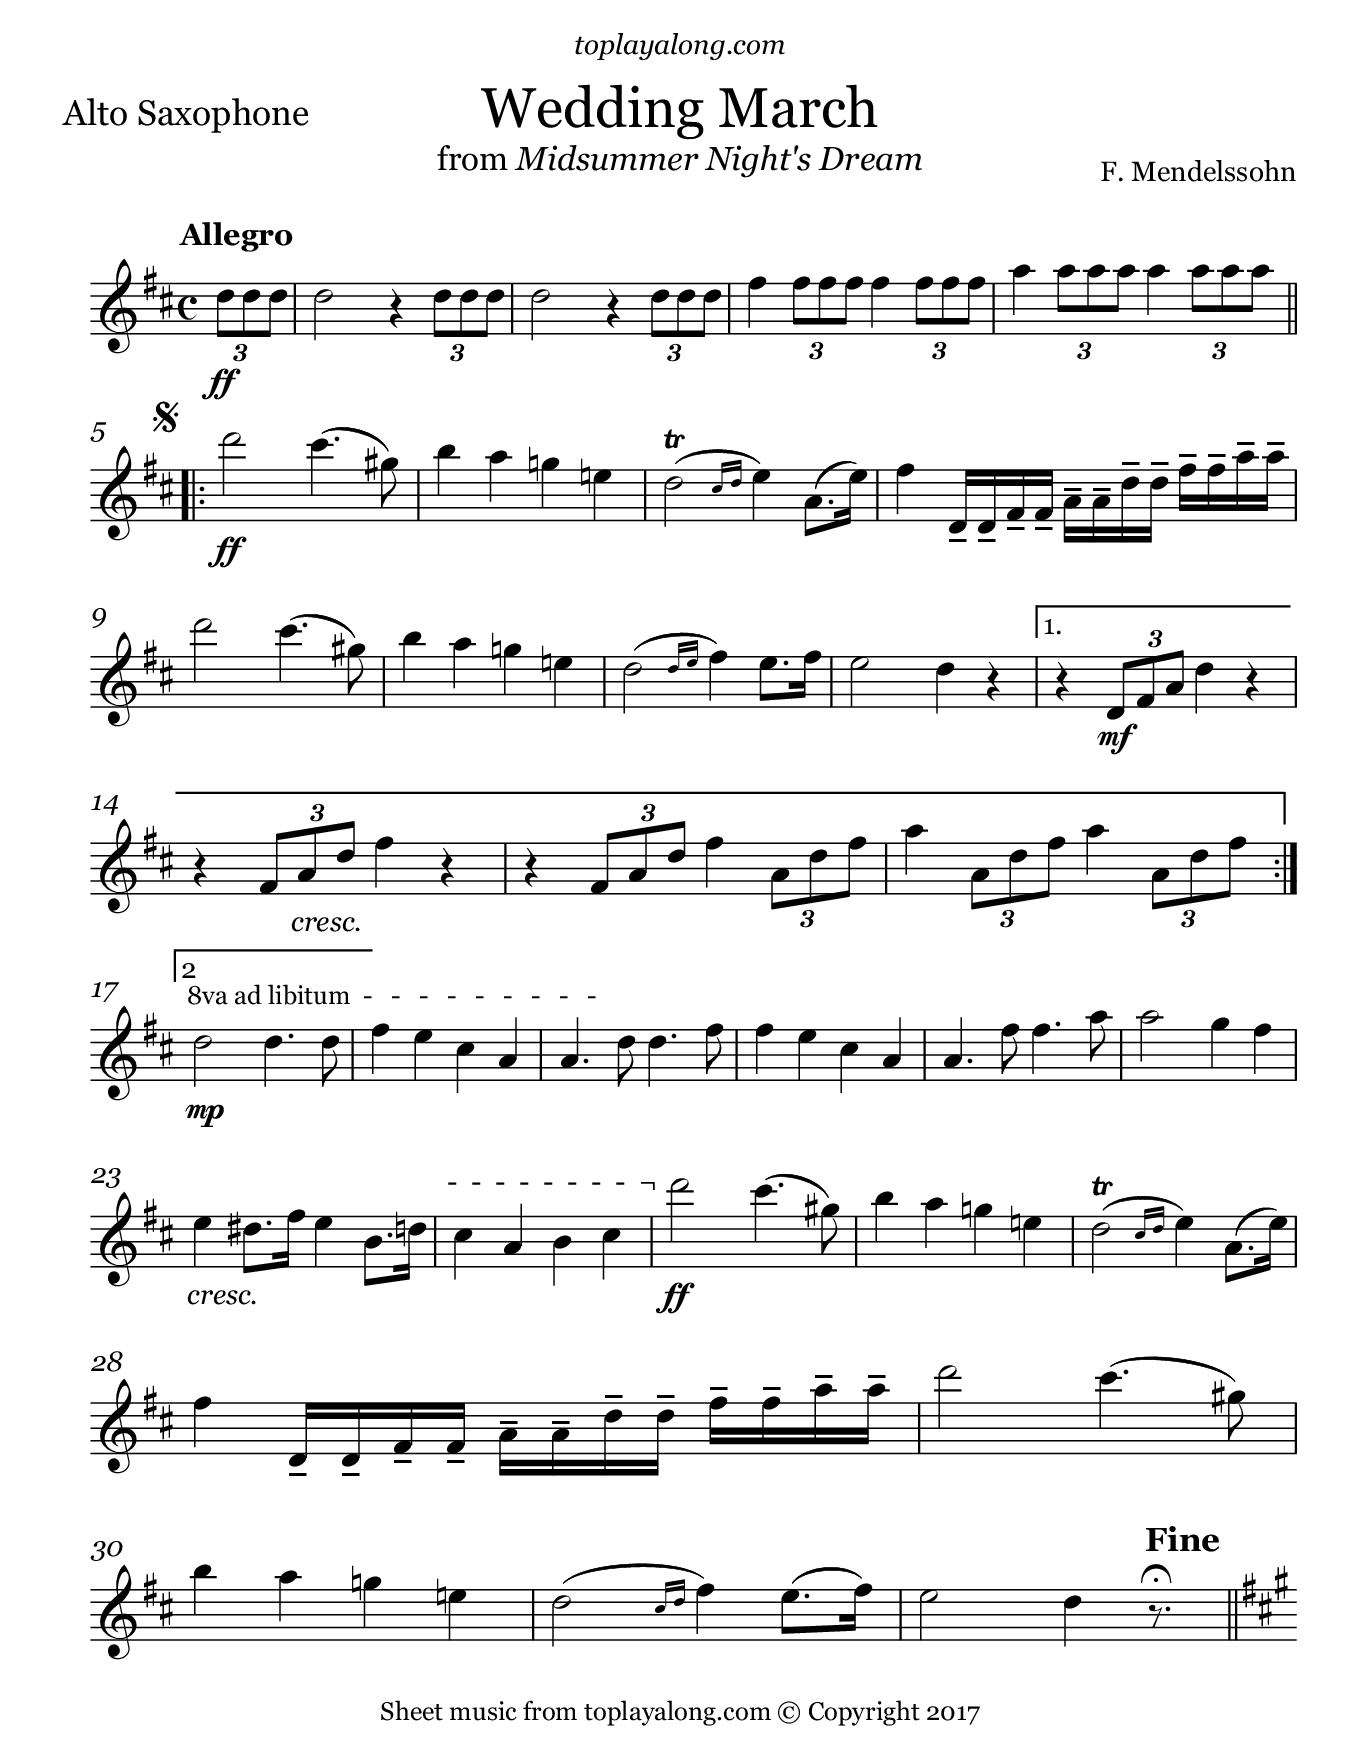 Wedding March from Midsummer Night's Dream by Mendelssohn. Sheet music for Alto Sax, page 1.